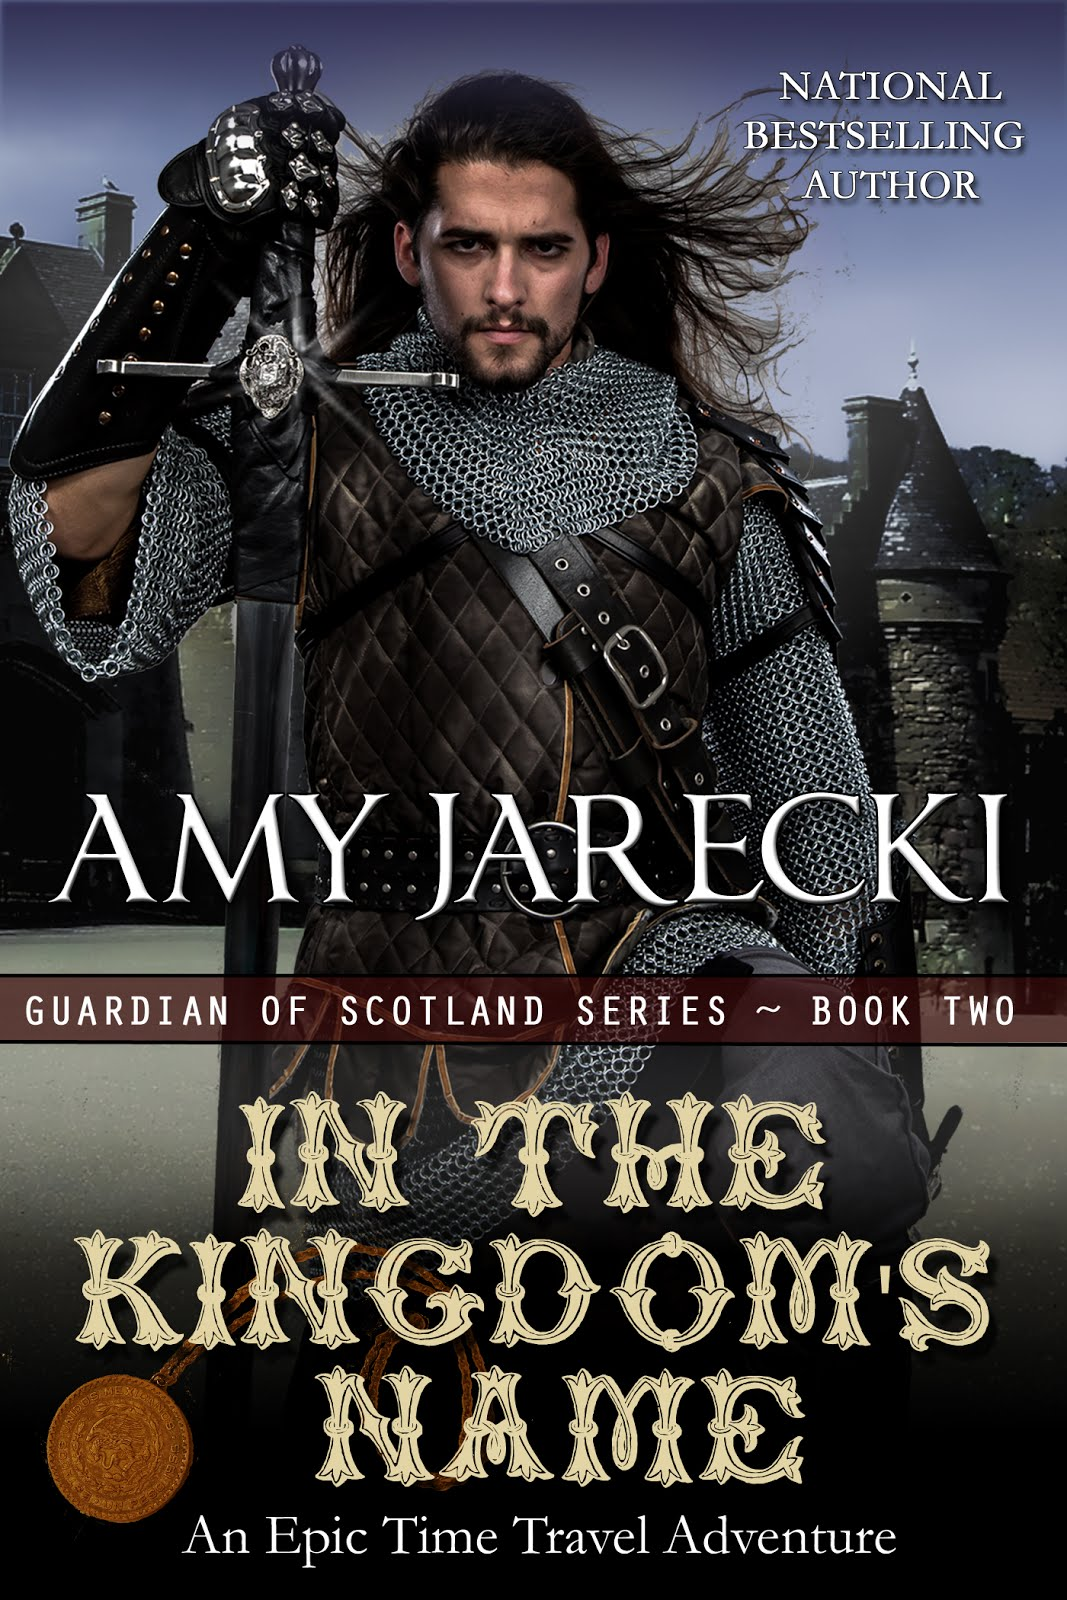 Part Two in the Guardian of Scotland Series